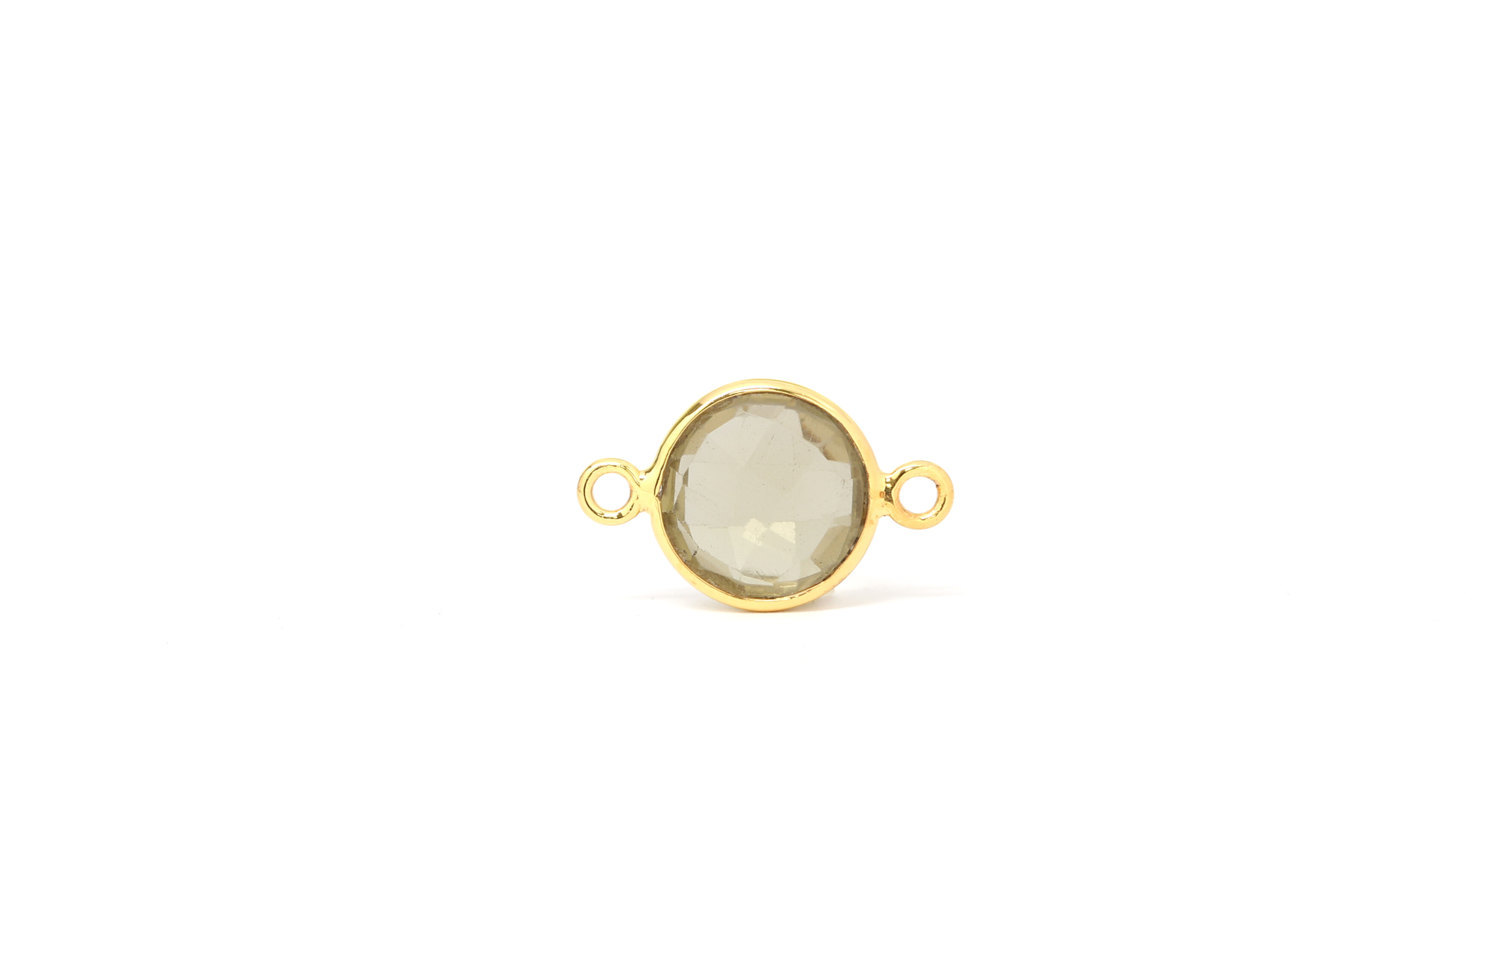 Primary image for Bezel Connector, Green Amethyst, Gold Plated Sterling Silver, 12mm, 1Pc (6938)/1